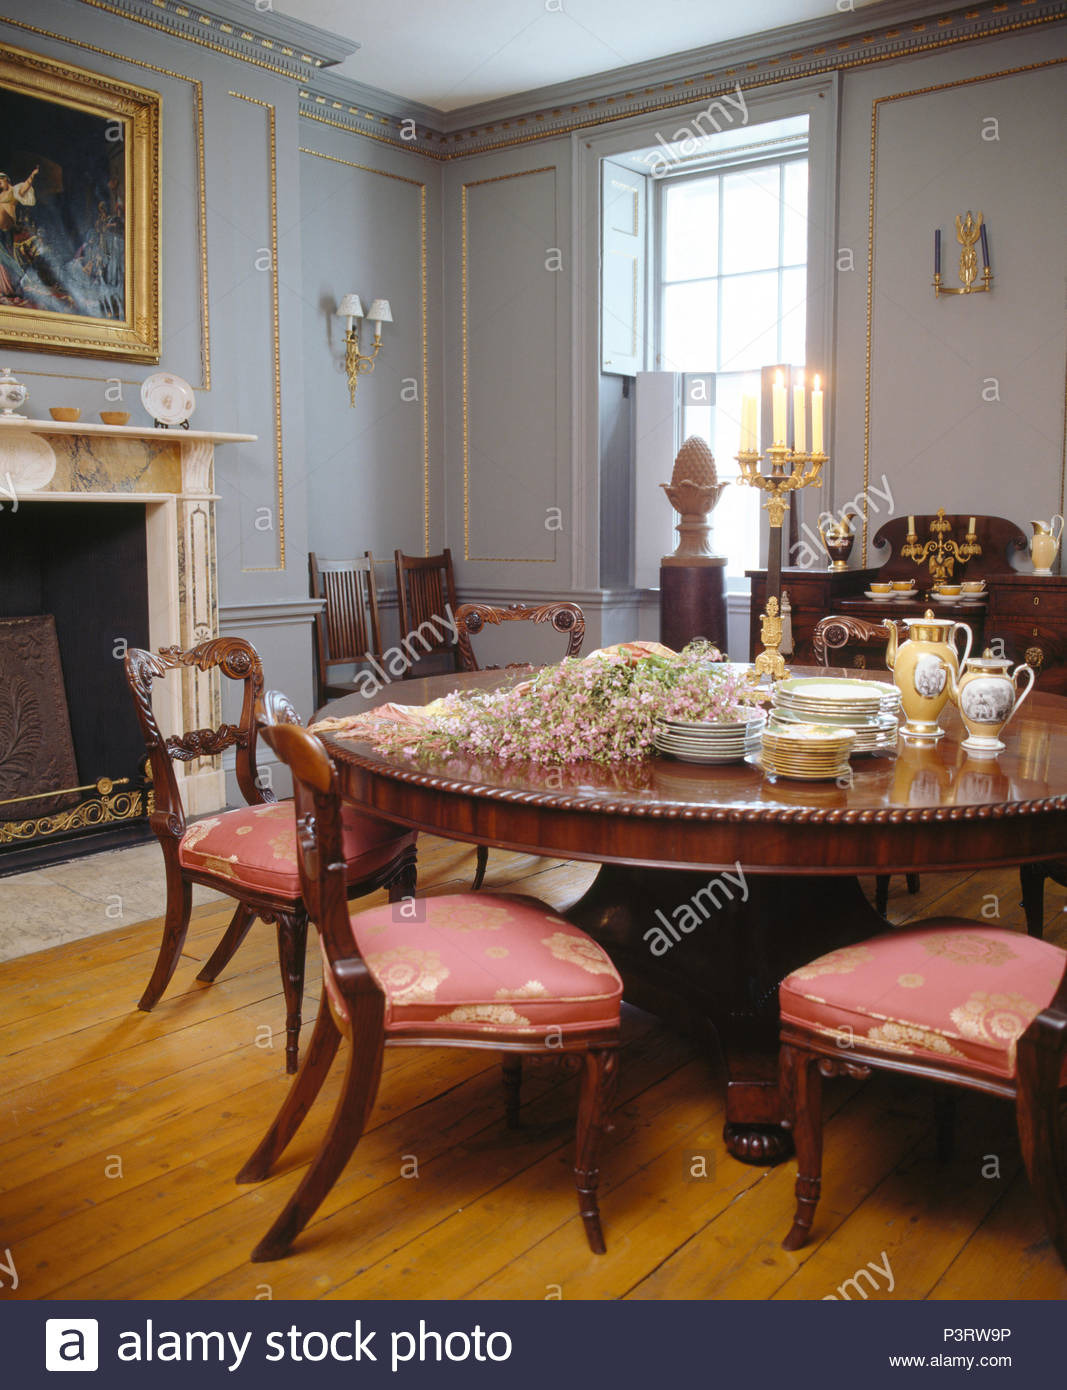 Antique Round Tables Furniture Fresh Chairs with Upholstered Seats at Antique Circular Table In